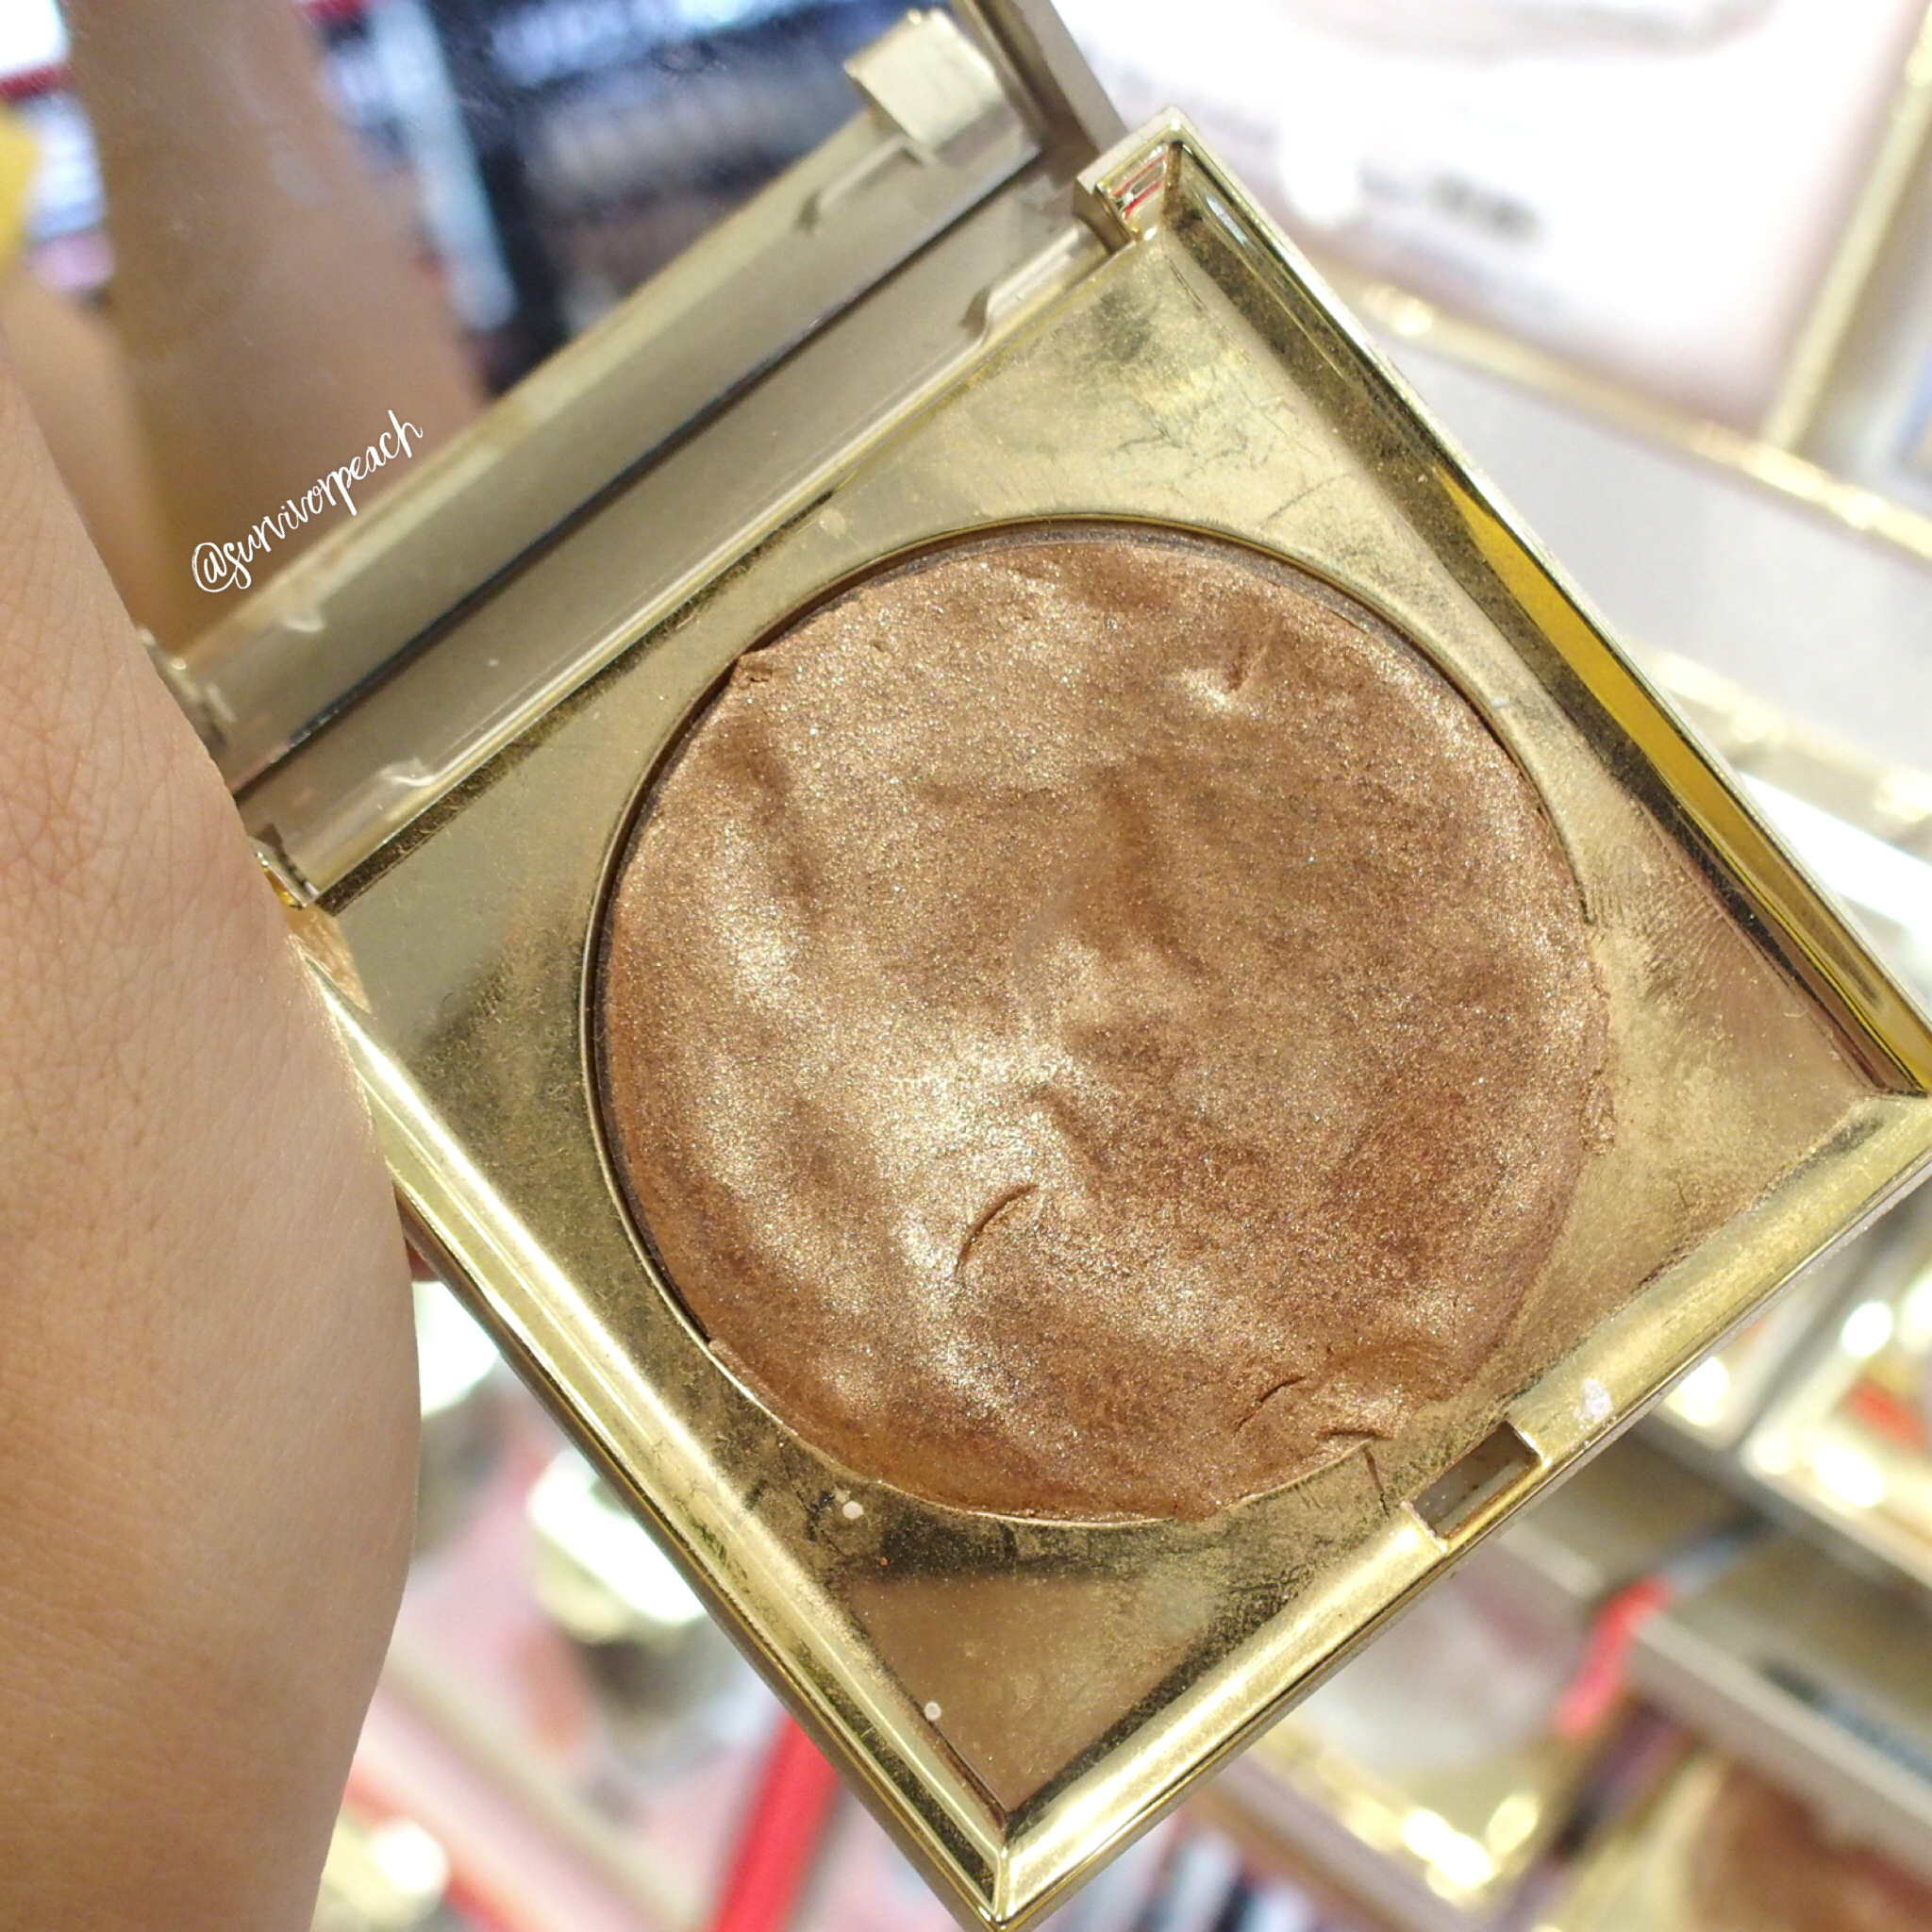 Stila Heavenly Hue Highlighter - Bronze